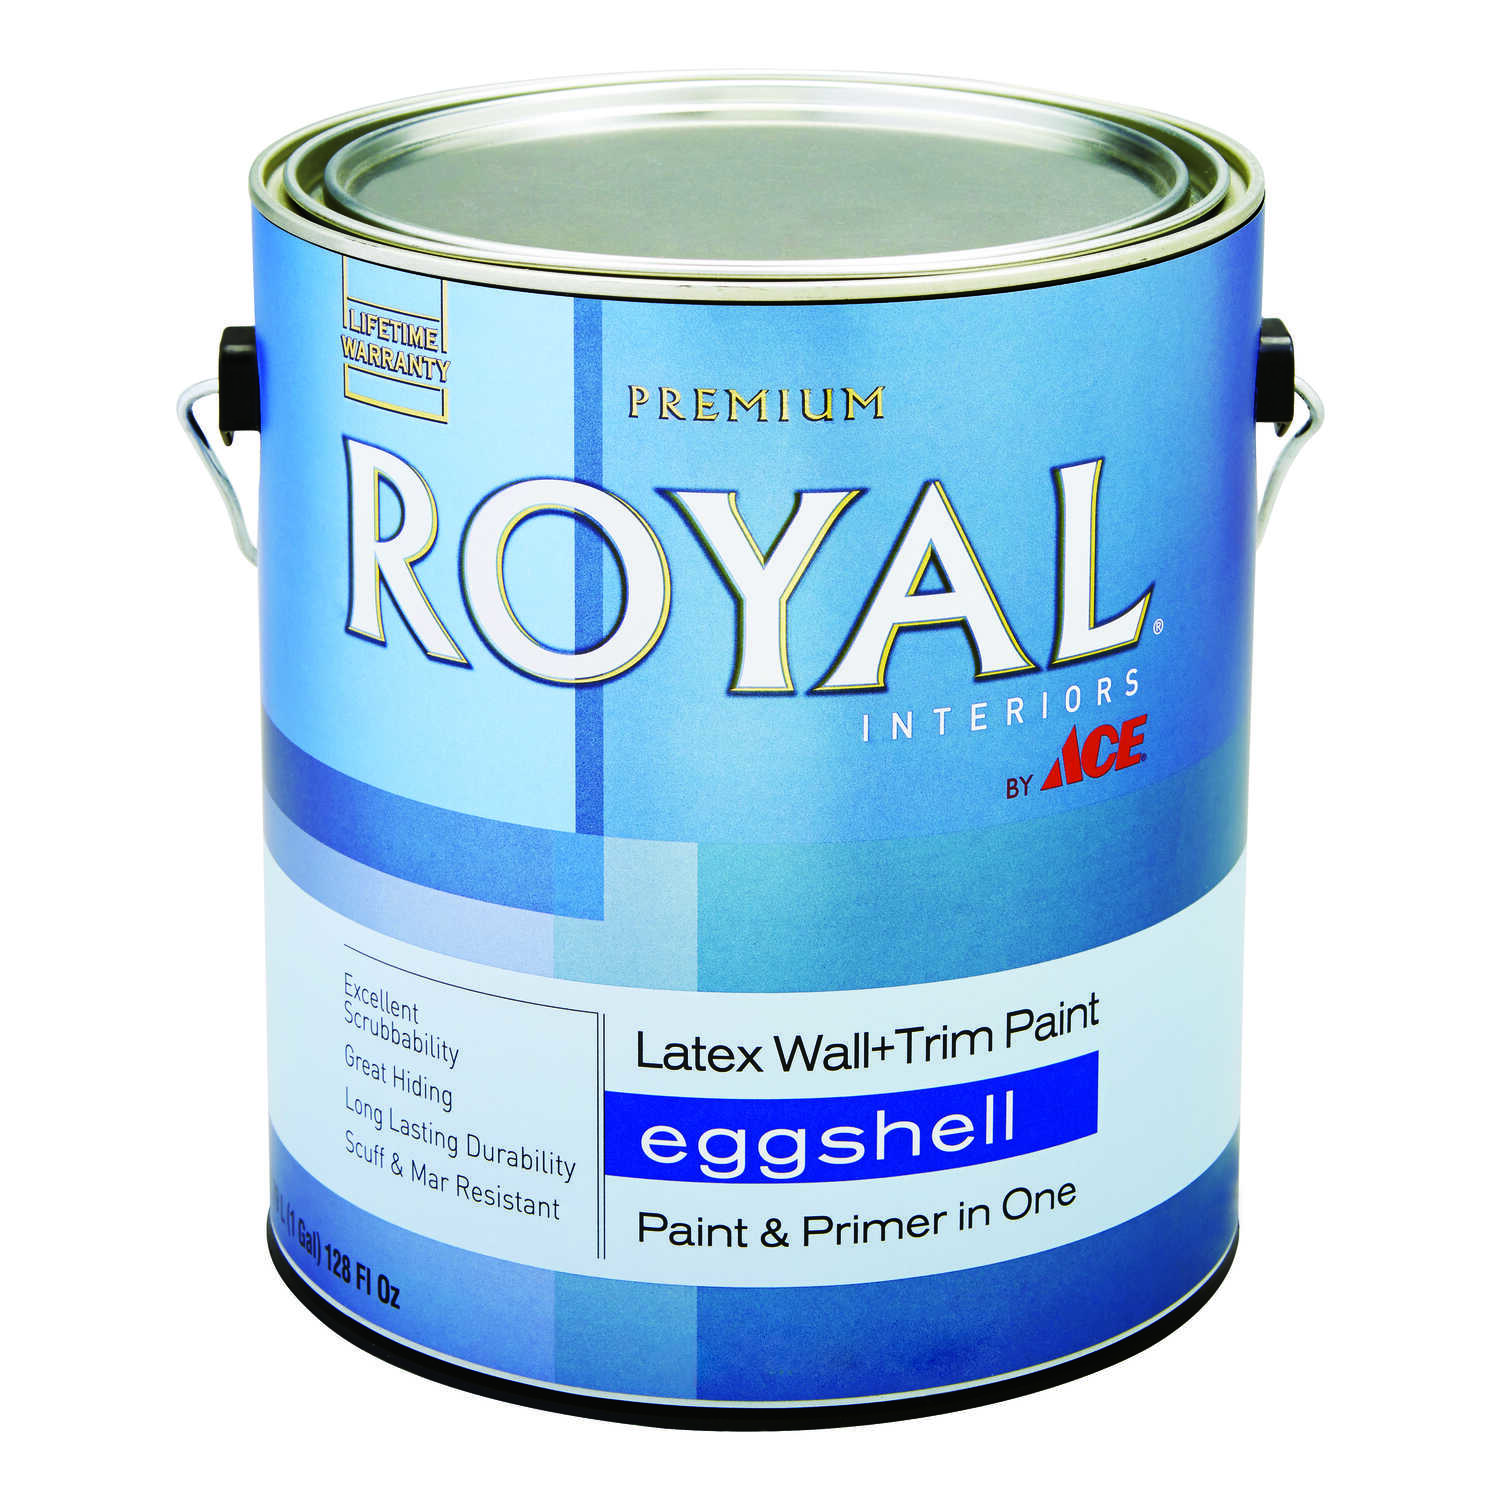 Ace  Royal  Eggshell  High Hiding White  Vinyl Acetate/Ethylene  Interior Latex Wall+Trim Paint  1 g